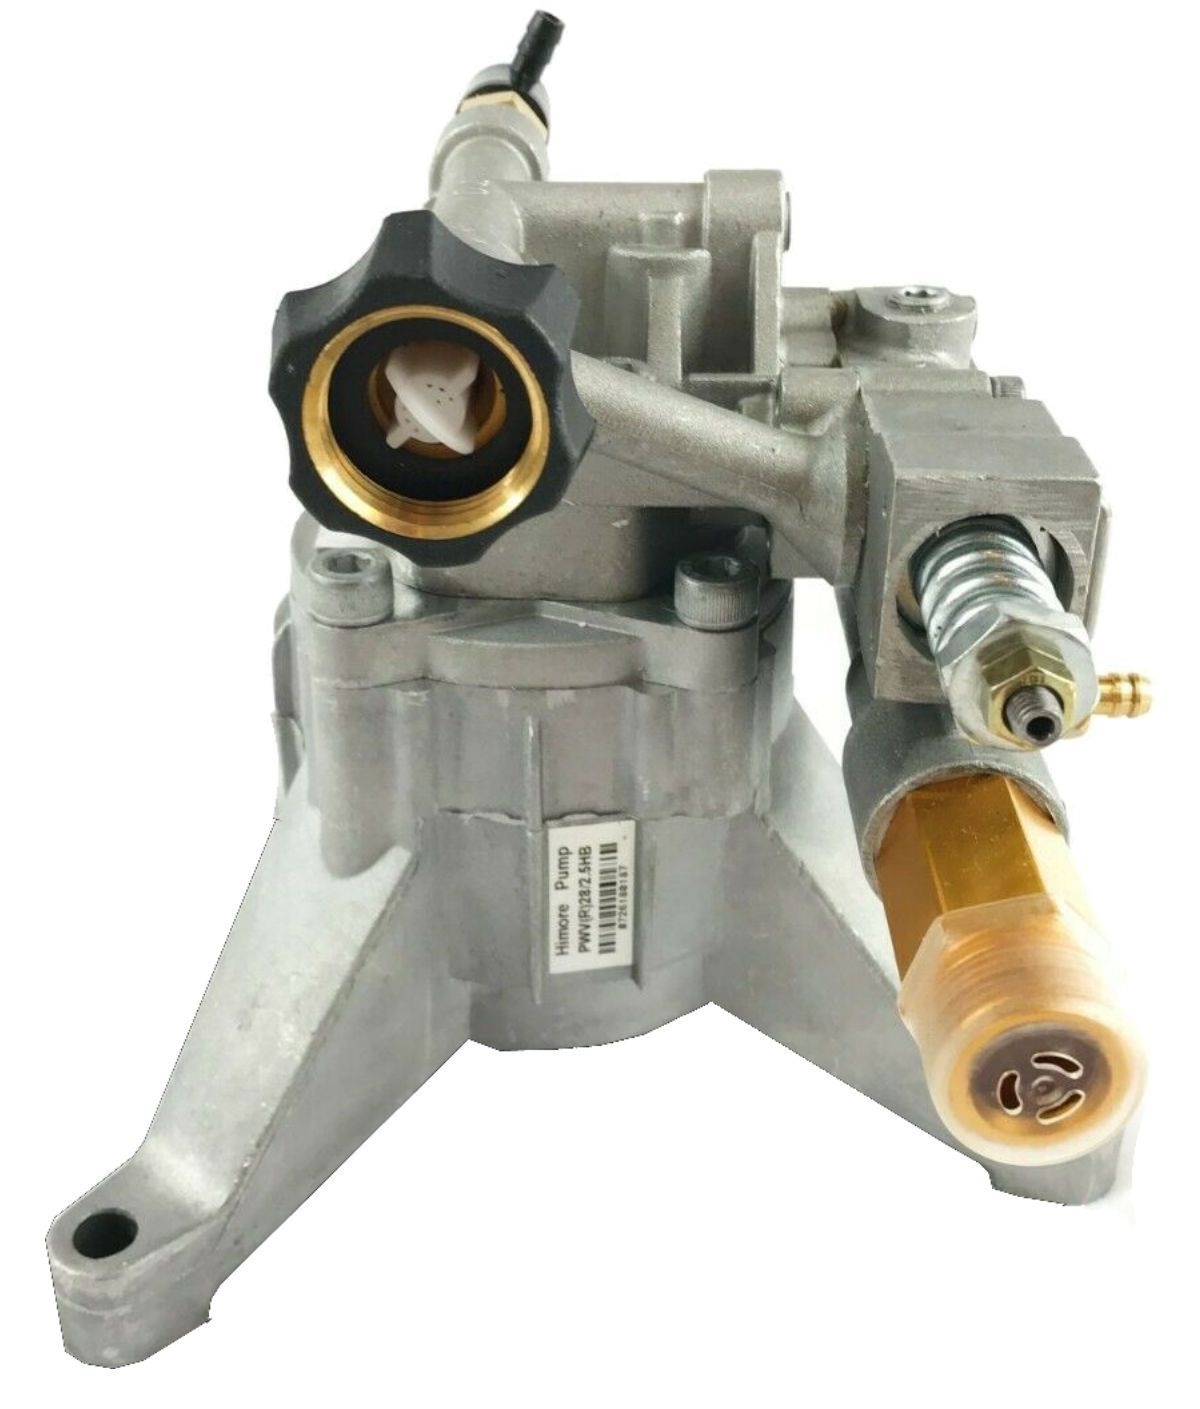 2700 PSI PRESSURE WASHER PUMP REPLACES FITS AR RMW2.2G24 - AE-Power